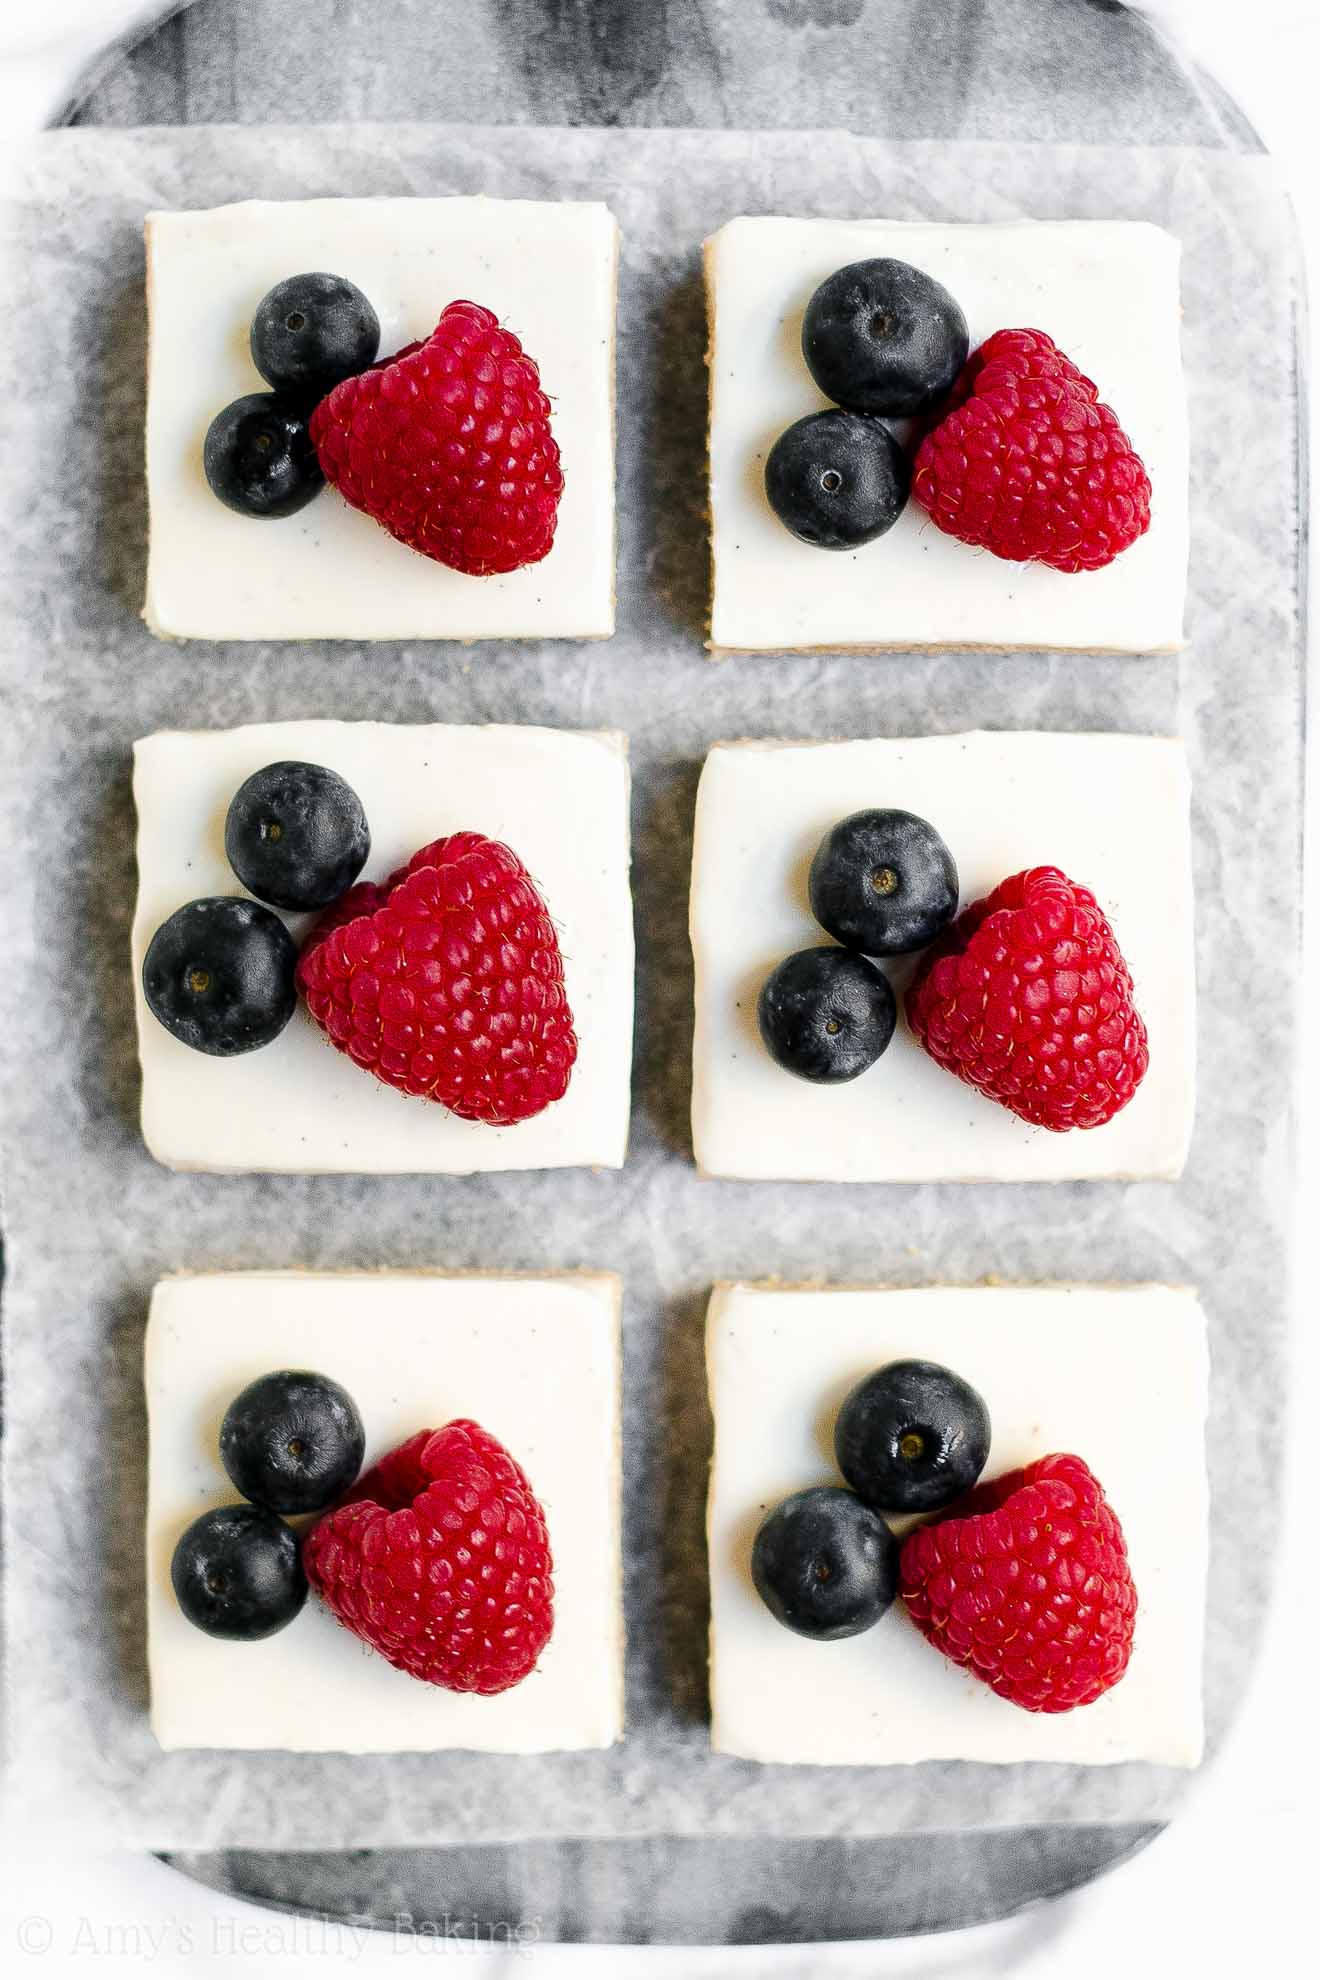 Healthy Frosted Sugar Cookie Bars for 4th of July Desserts